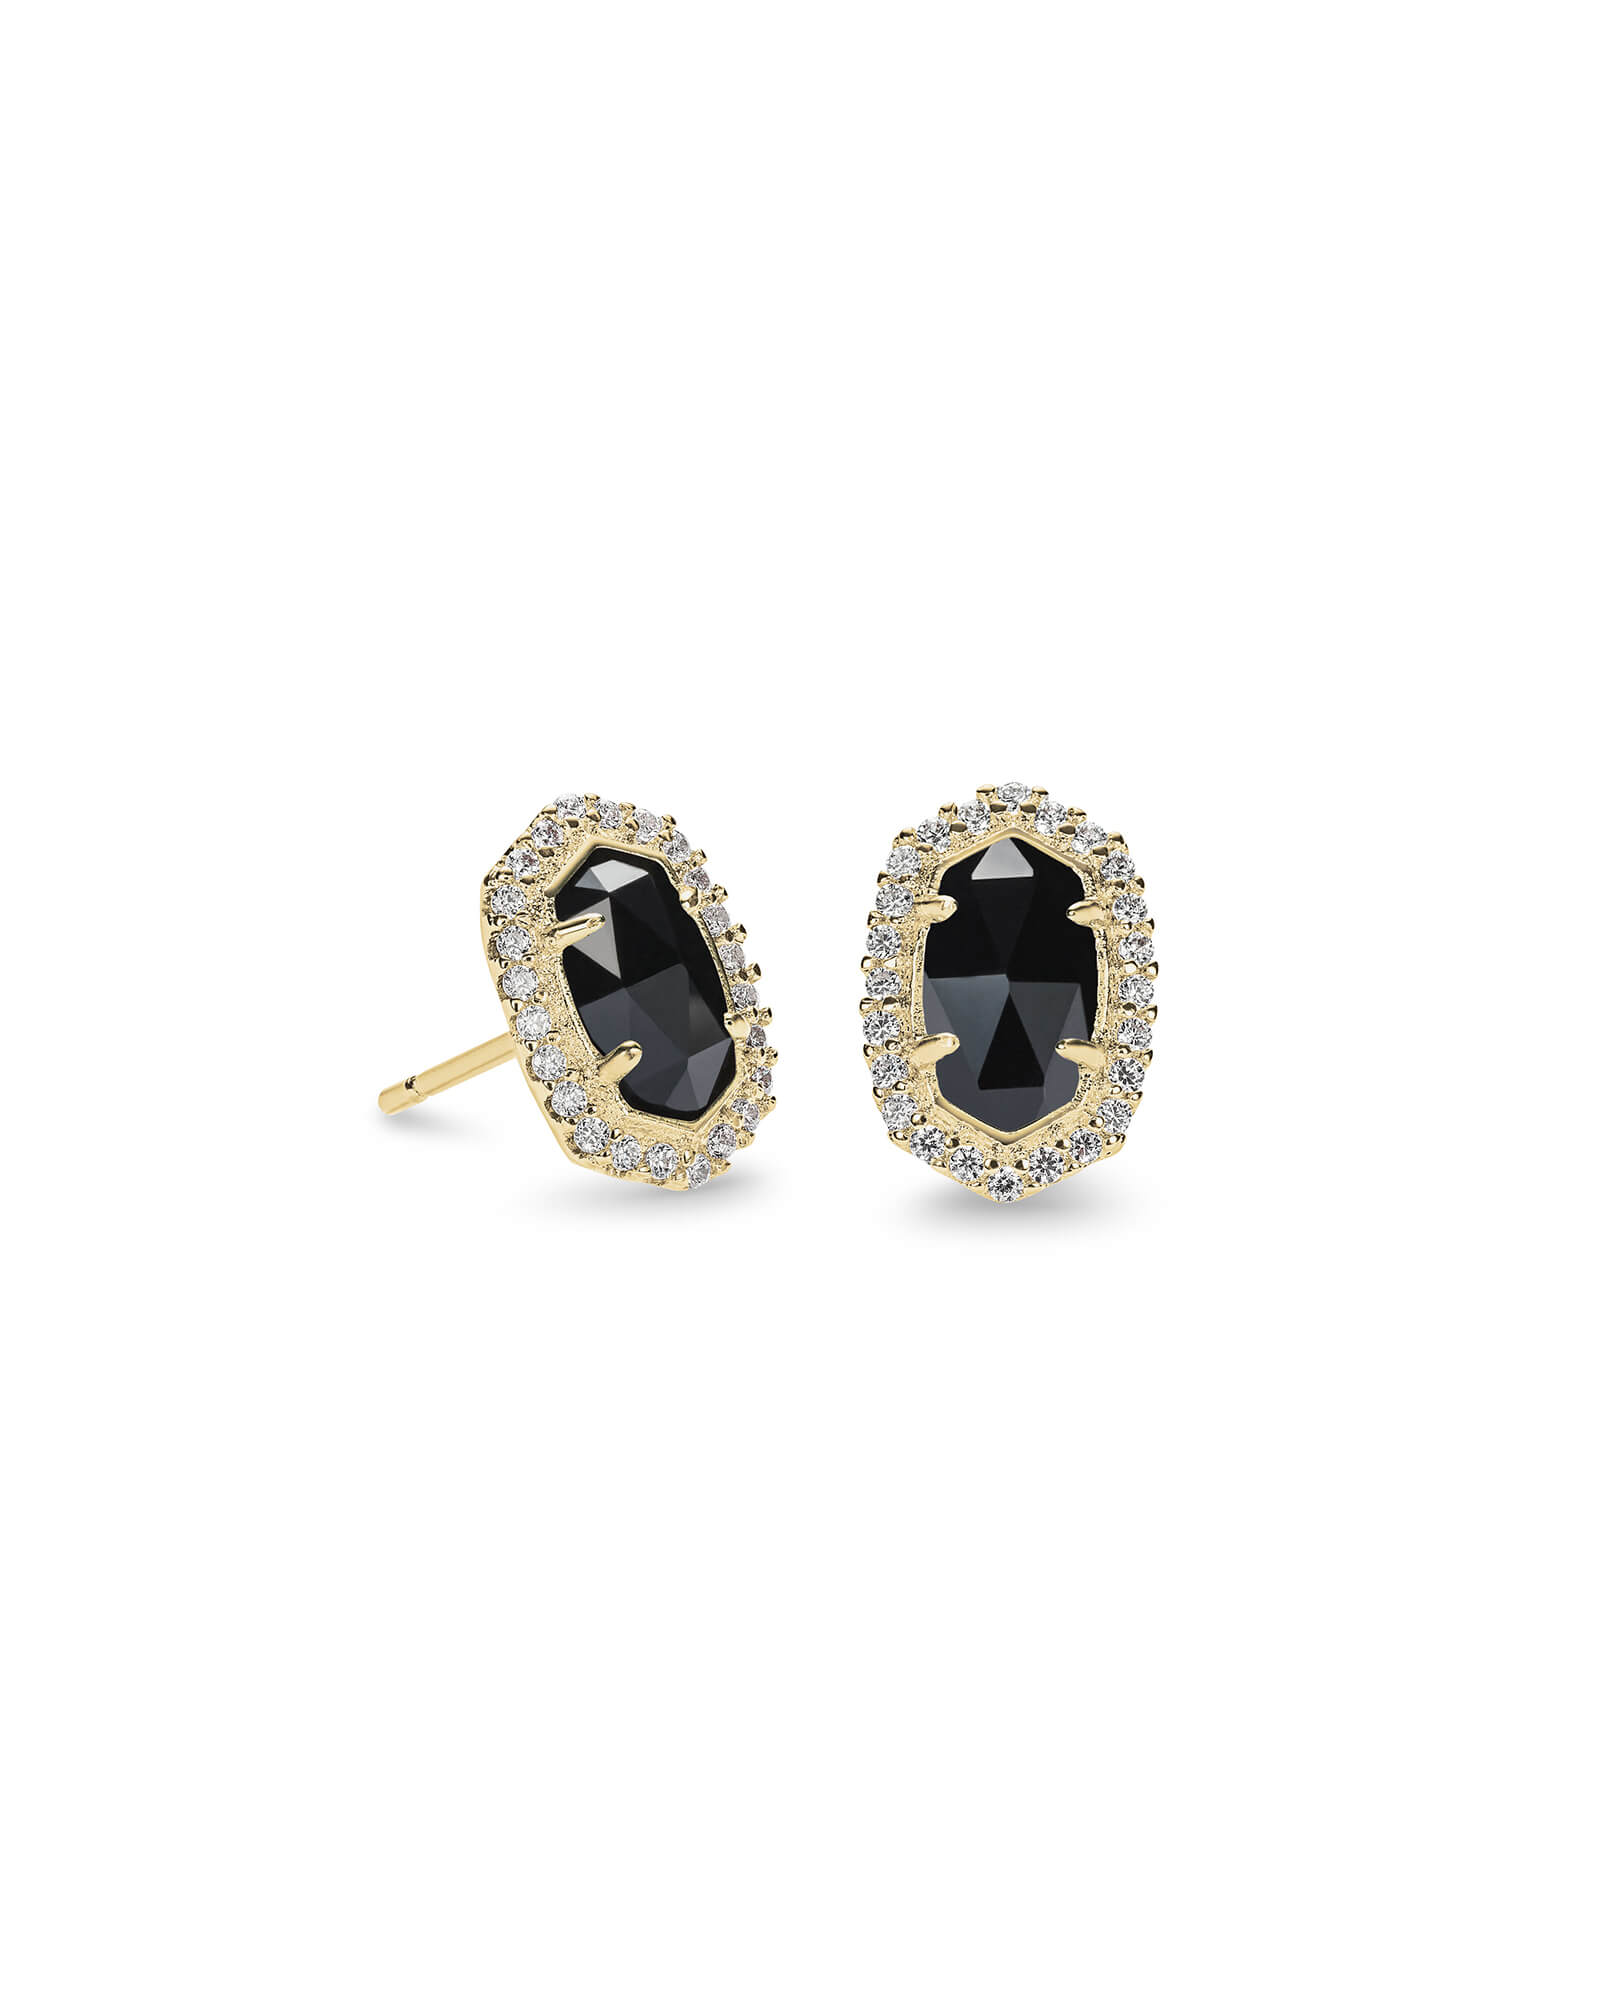 Cade Gold Stud Earrings in Black